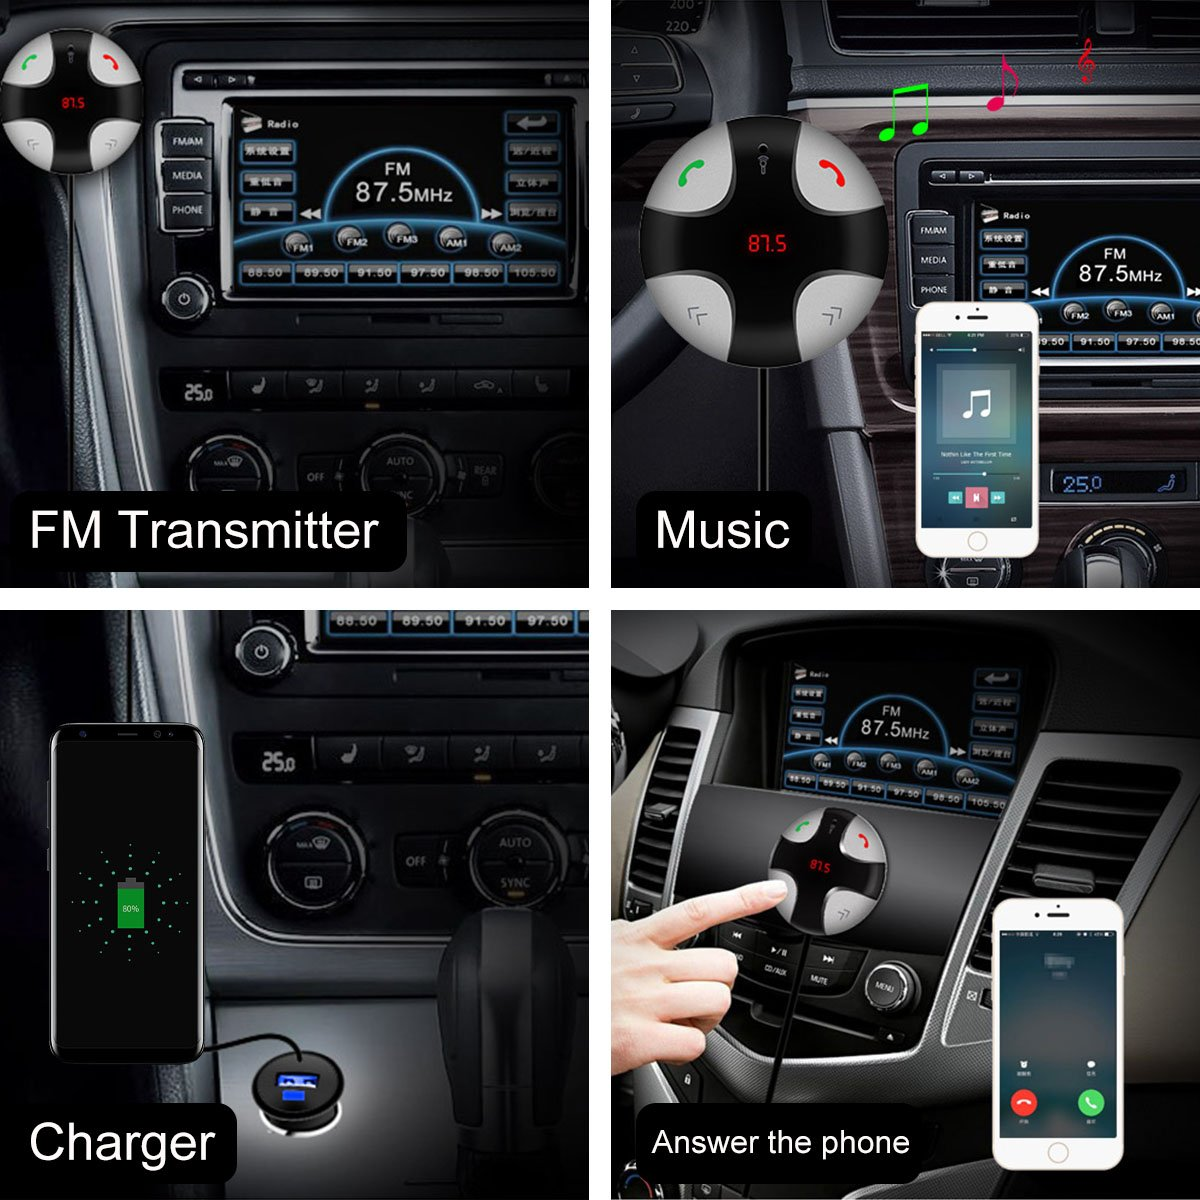 Guzack FM Transmitter Wireless Bluetooth Handsfree Transmitter Caller with Detachable Magnetic Mount TF Card Slot and USB Charger Car Stereo Receiver Wireless Car Kits Home Audio Stereo System